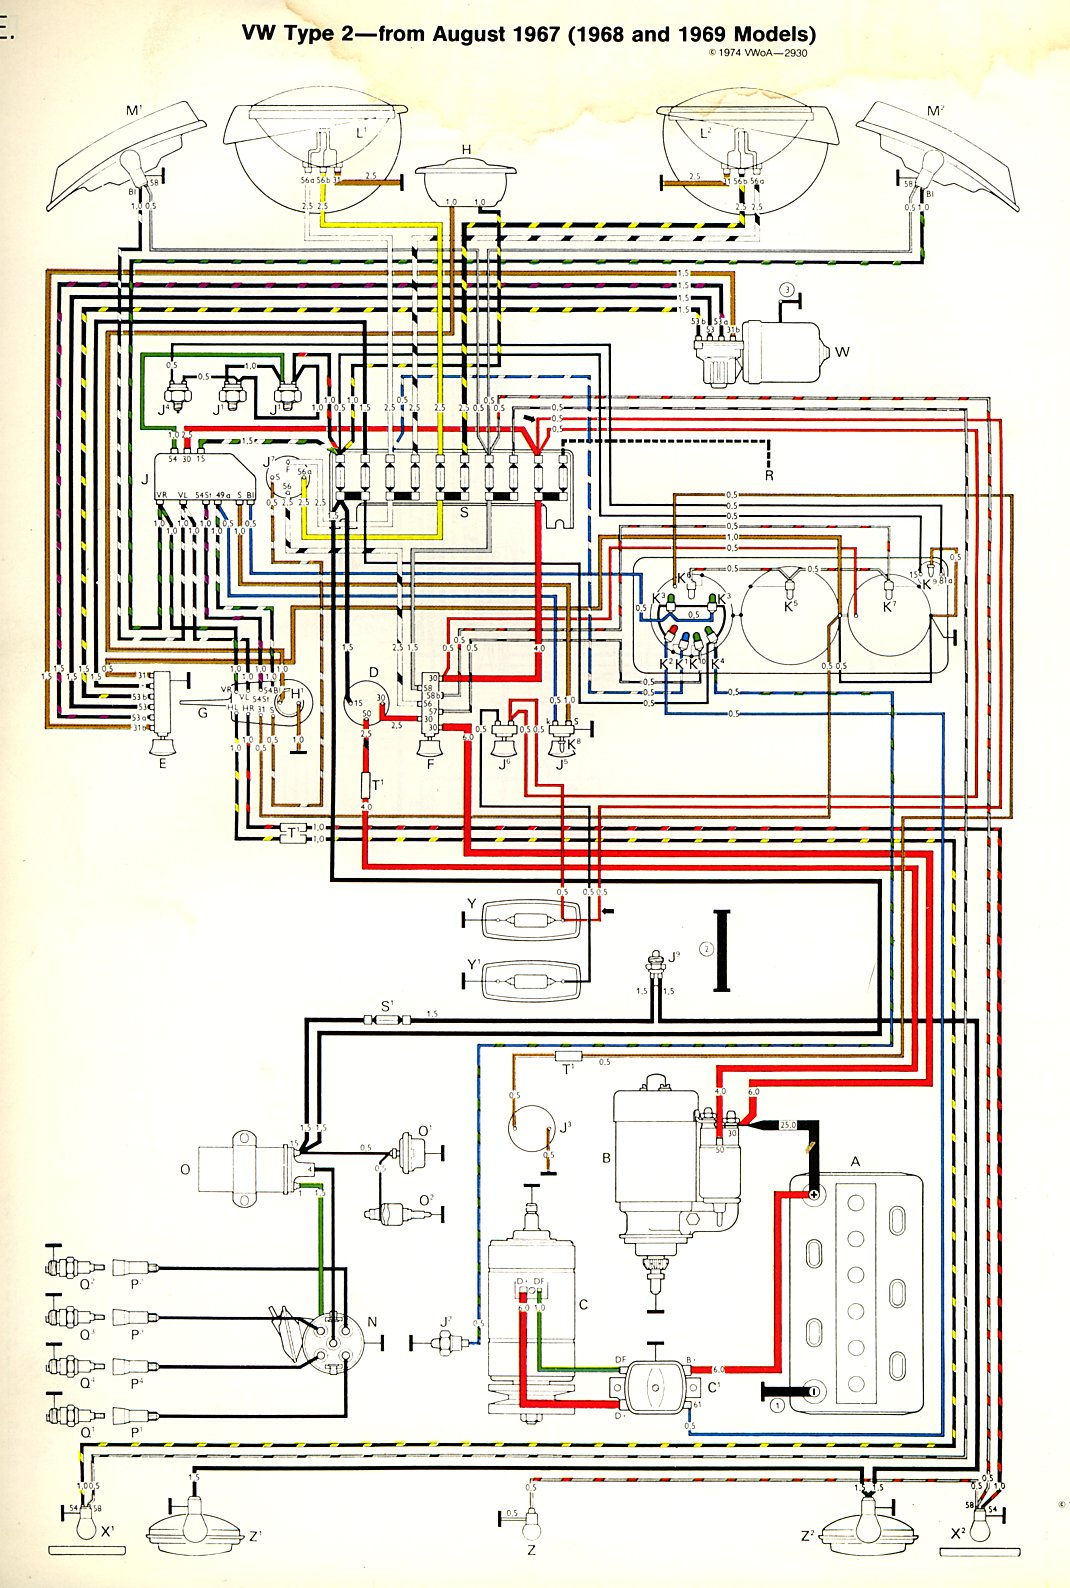 thesamba com type 2 wiring diagrams rh thesamba com 71 vw bus wiring diagram 1965 vw bus wiring diagram